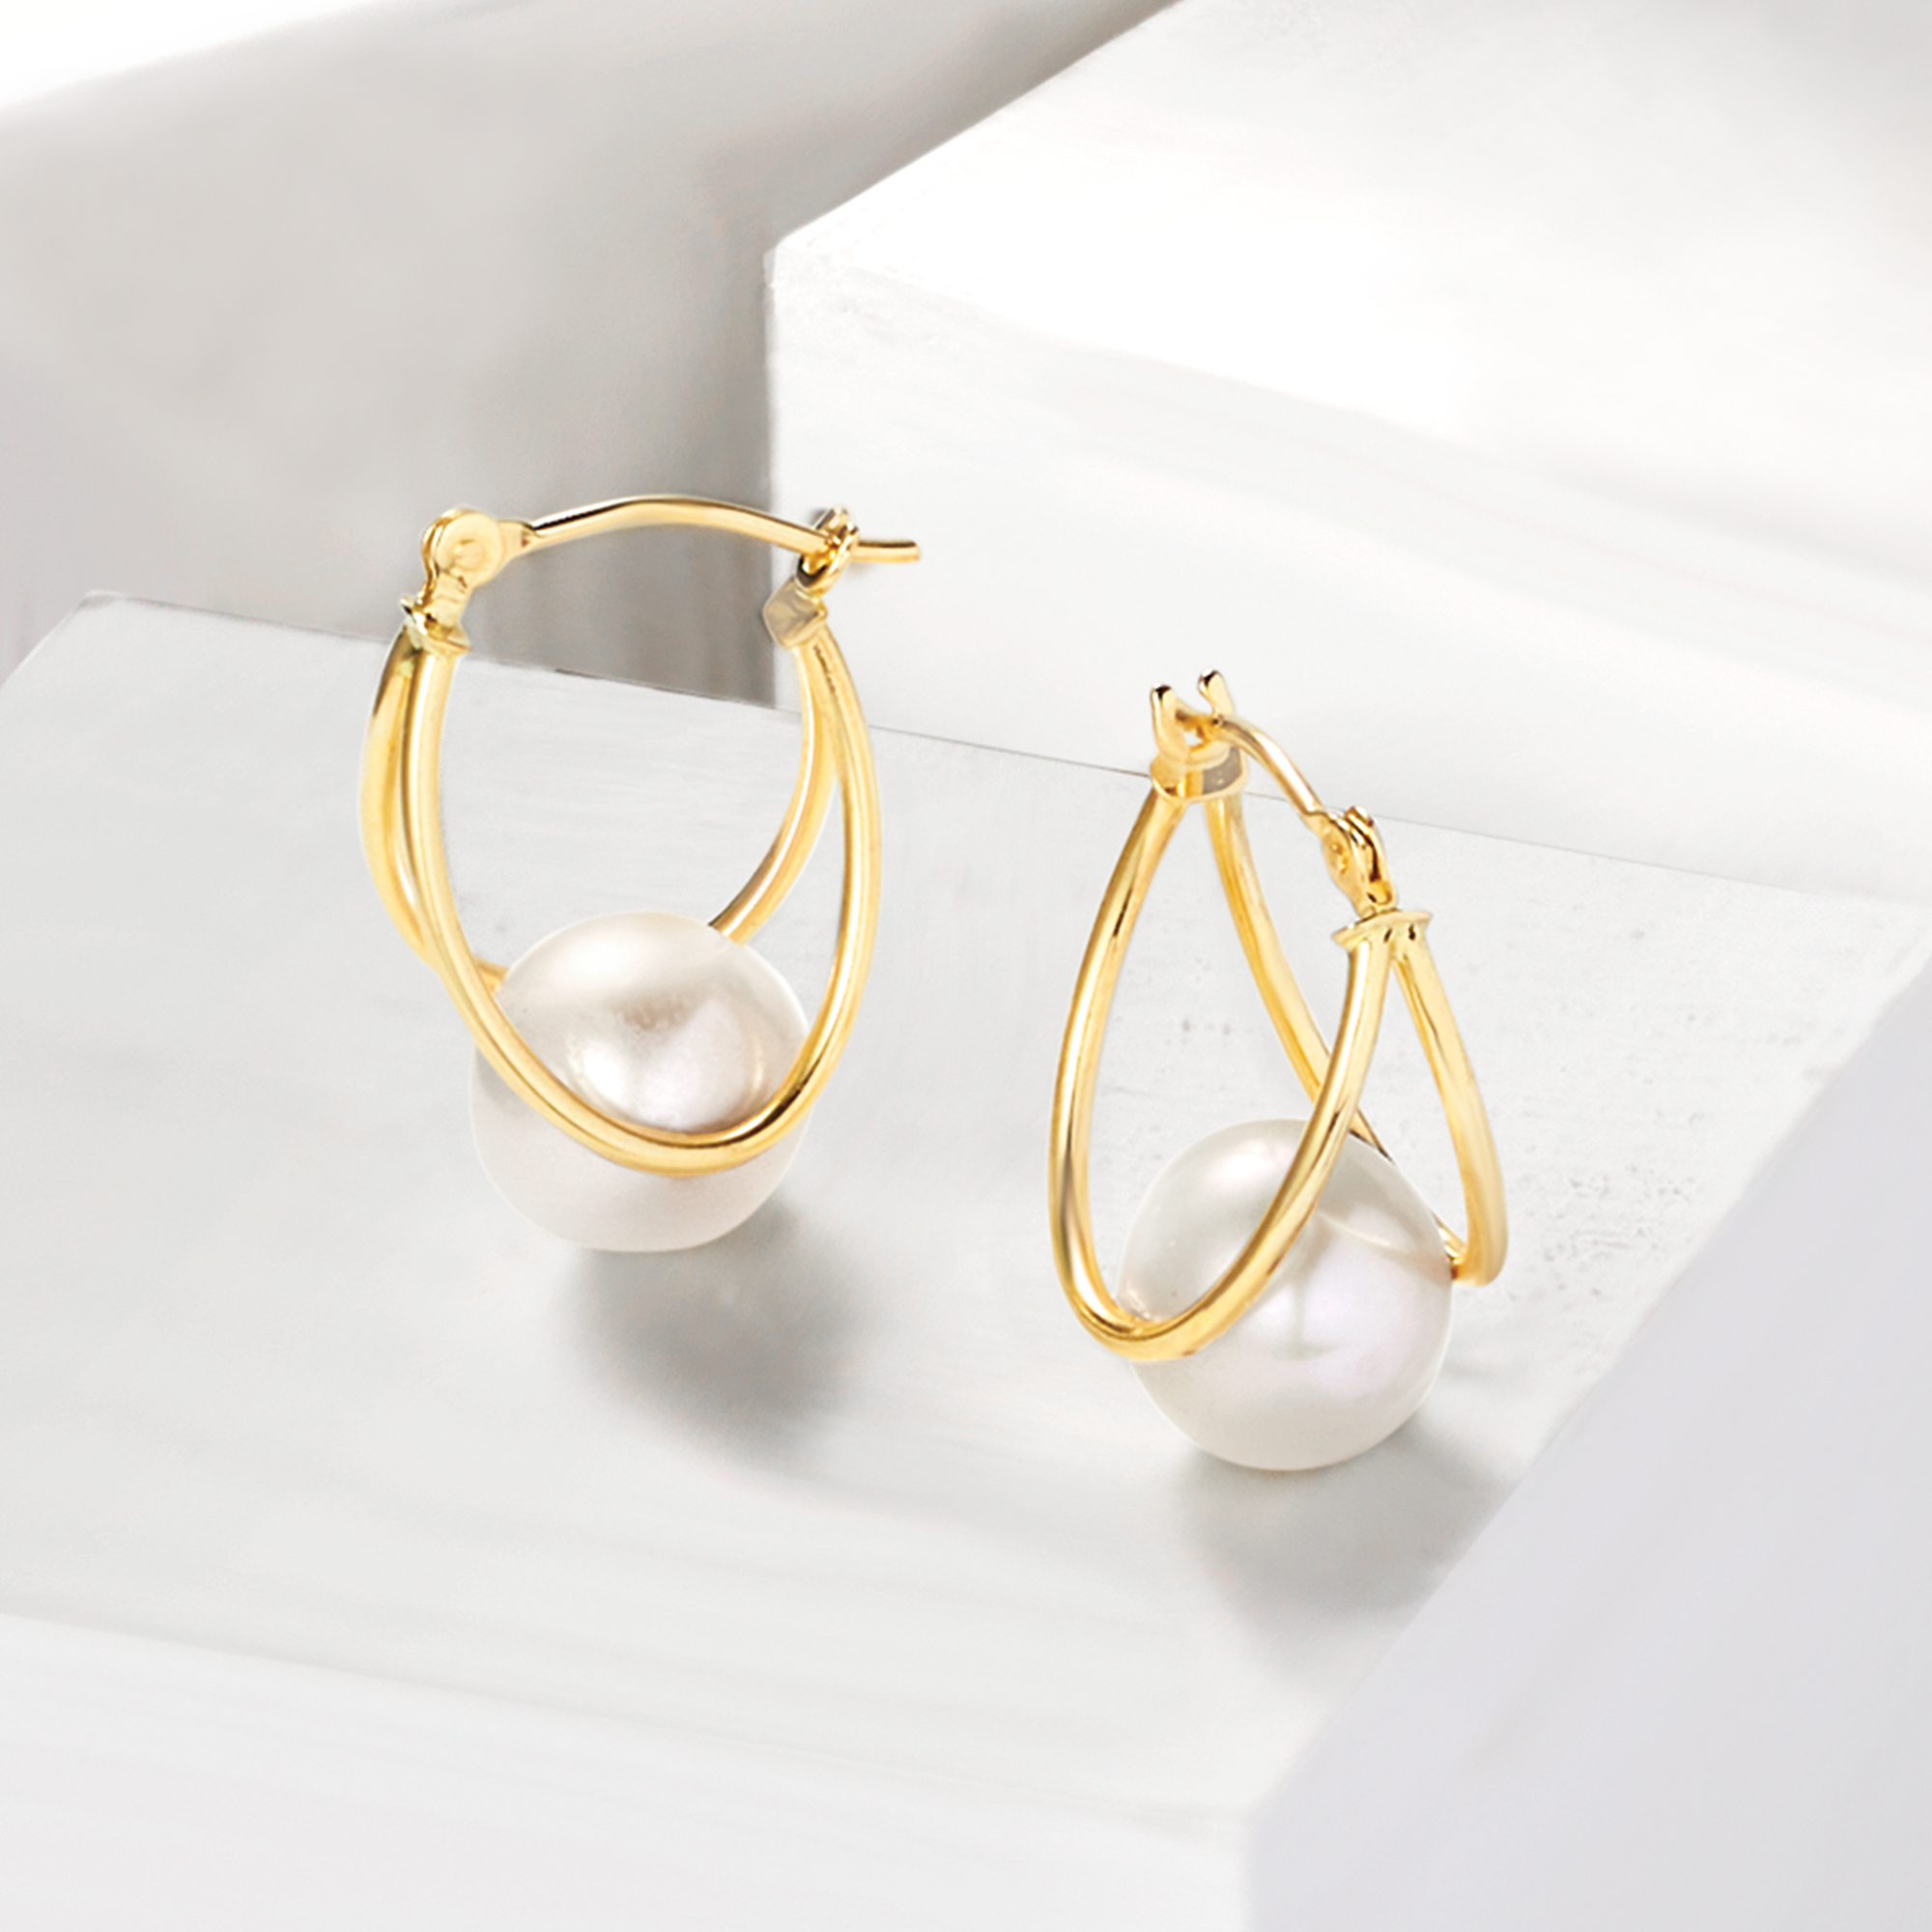 Gold Silver Popular Quality 3//4 Hoop Earring with Stones Jewelry For Women Gift